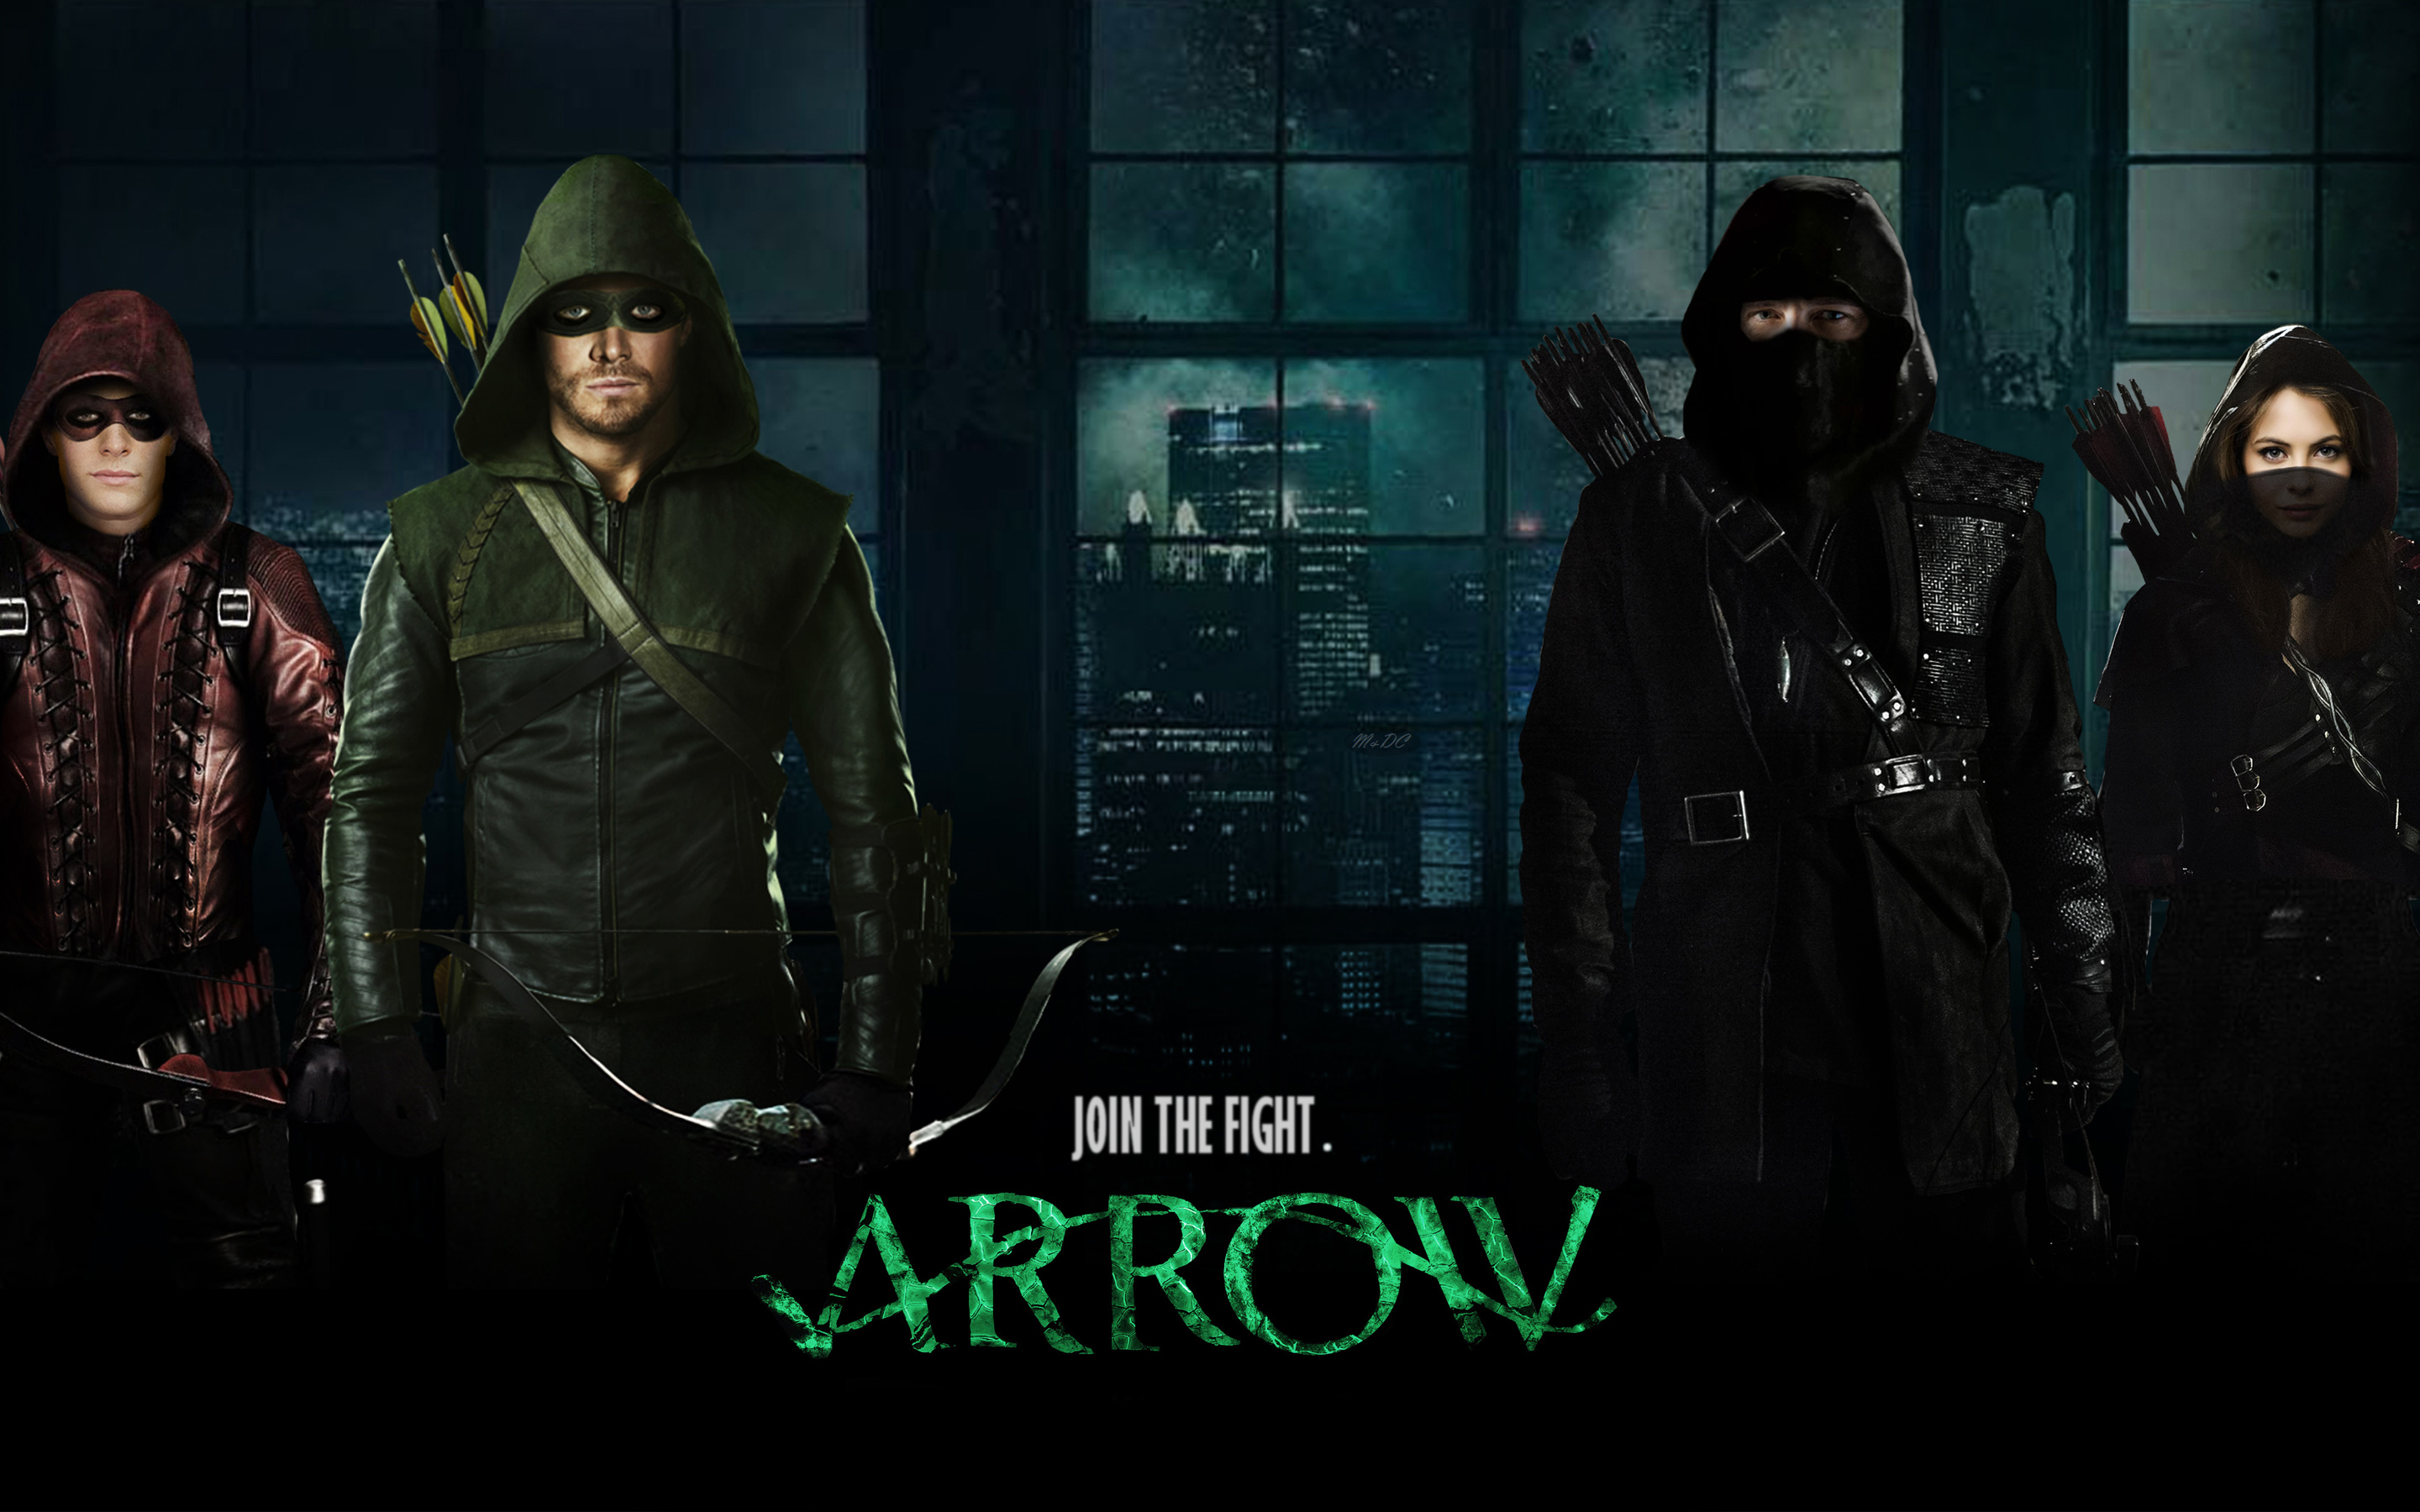 Arrow season 4 hd hd tv shows 4k wallpapers images - Tv series wallpaper 4k ...